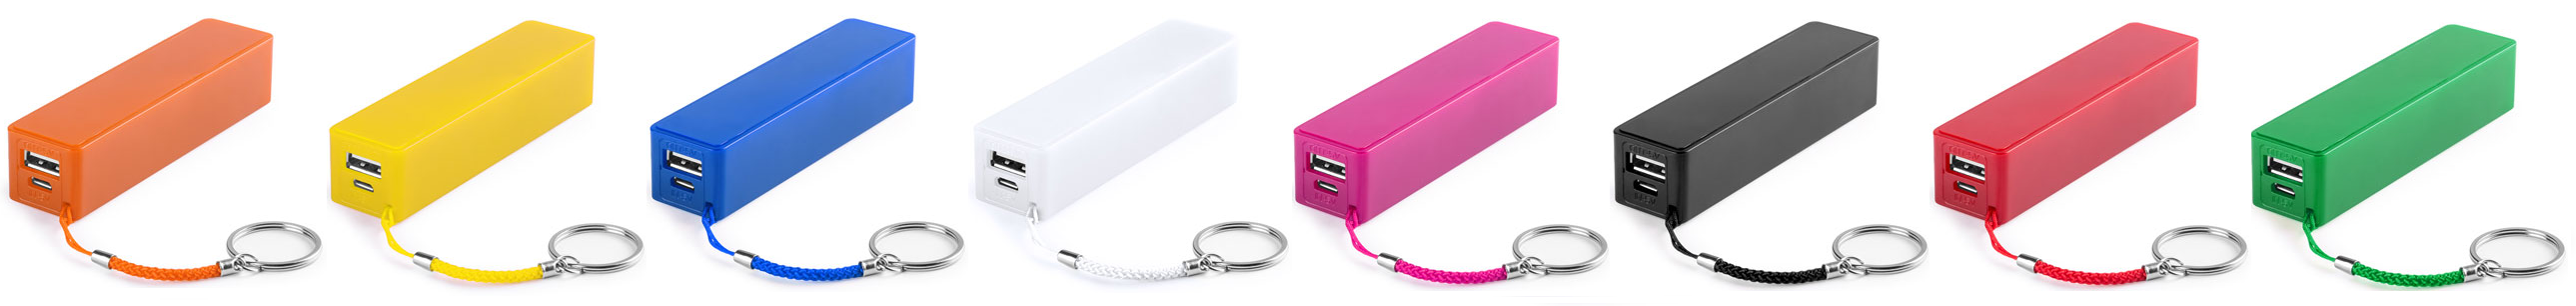 regalos de empresa powerbank